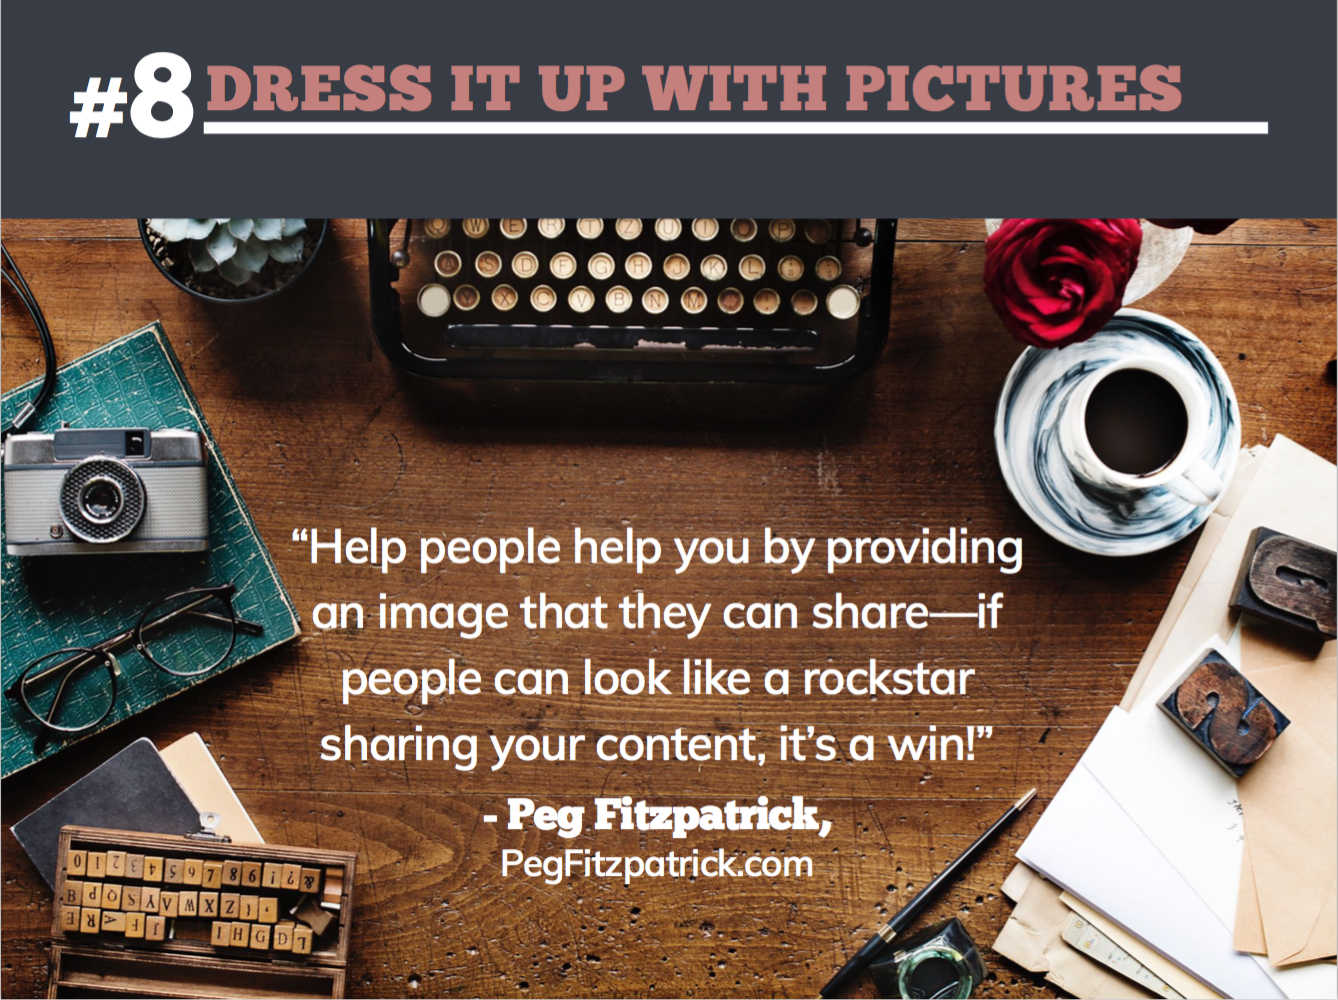 provide an image they can share